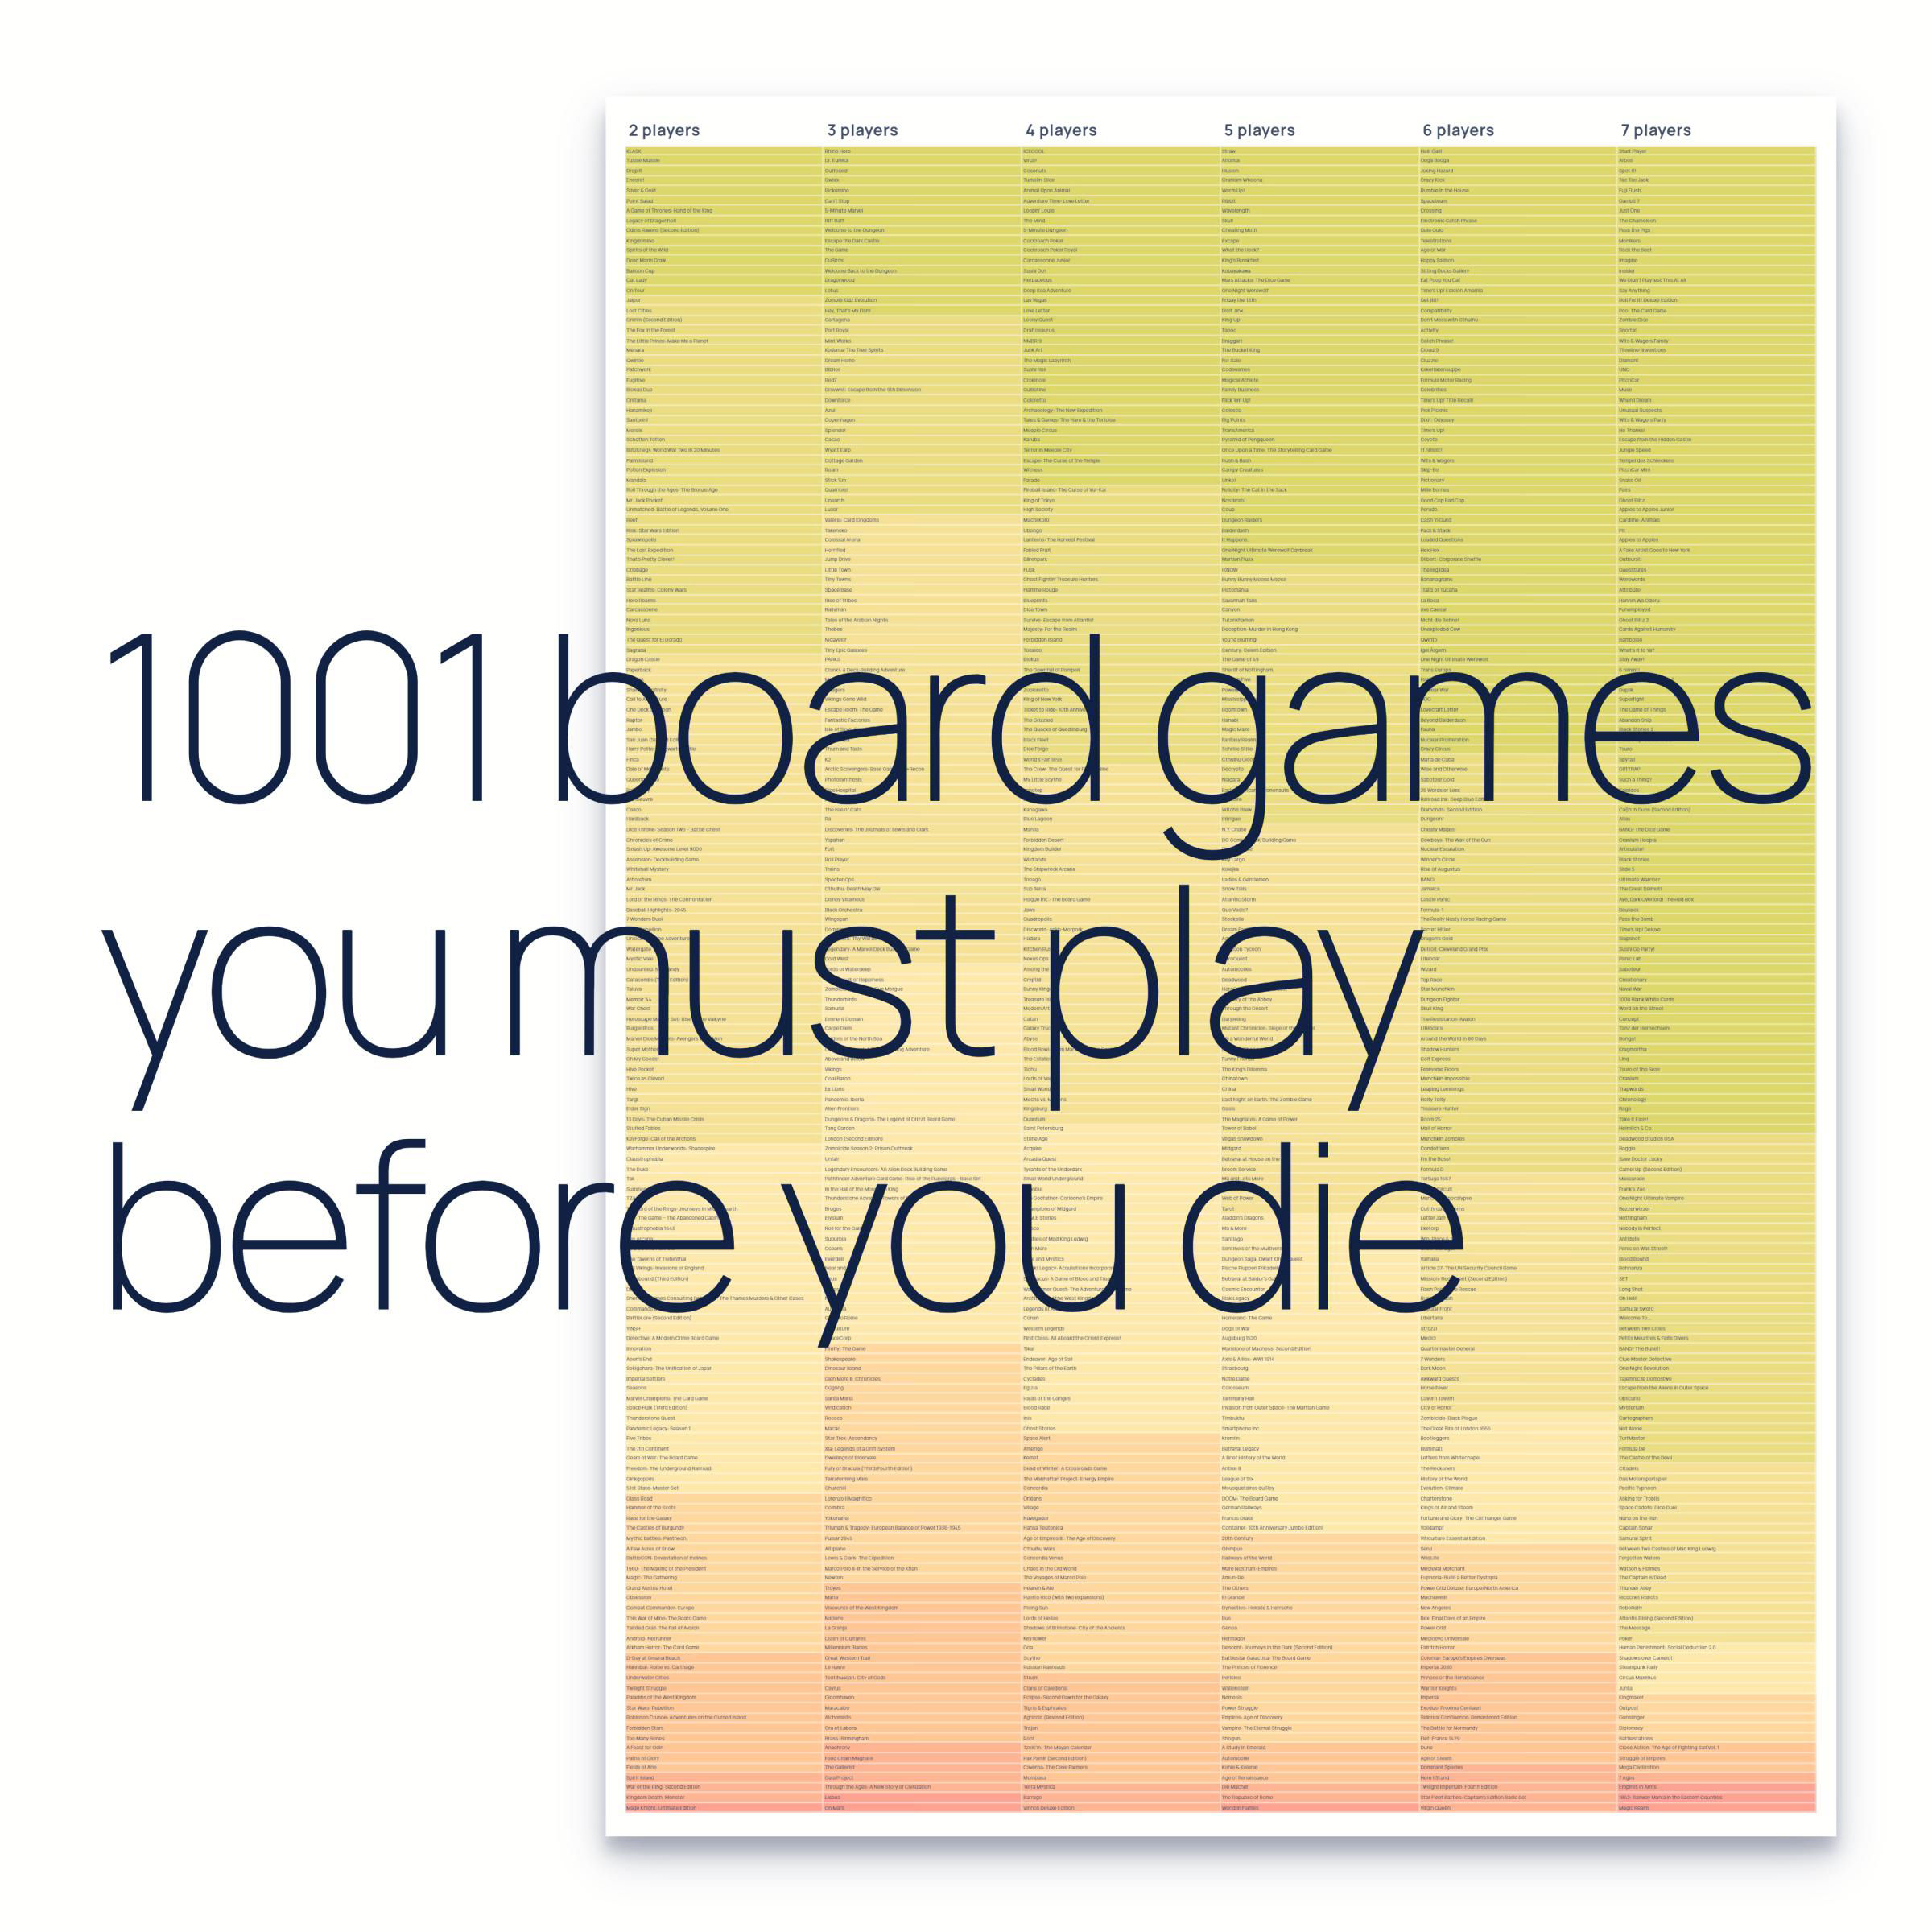 Diagram of best board games, sorted by recommended player count and weight rating